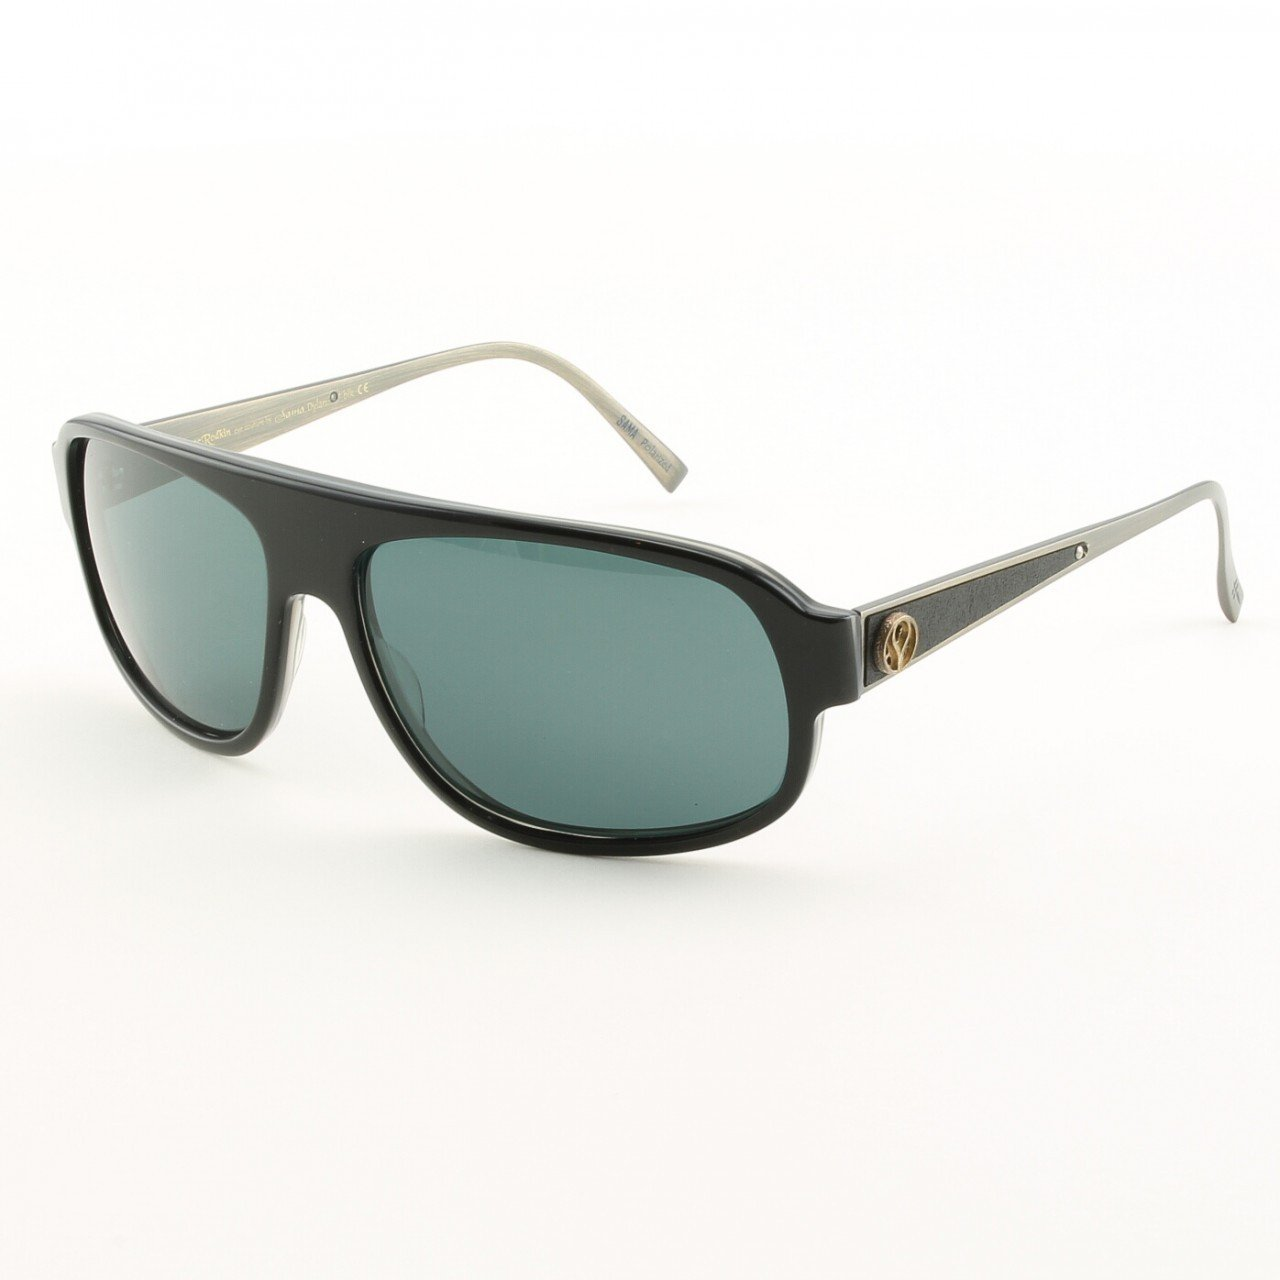 Loree Rodkin Dylan Sunglasses Black w/ Polarized Lenses, Leather and Sterling Silver